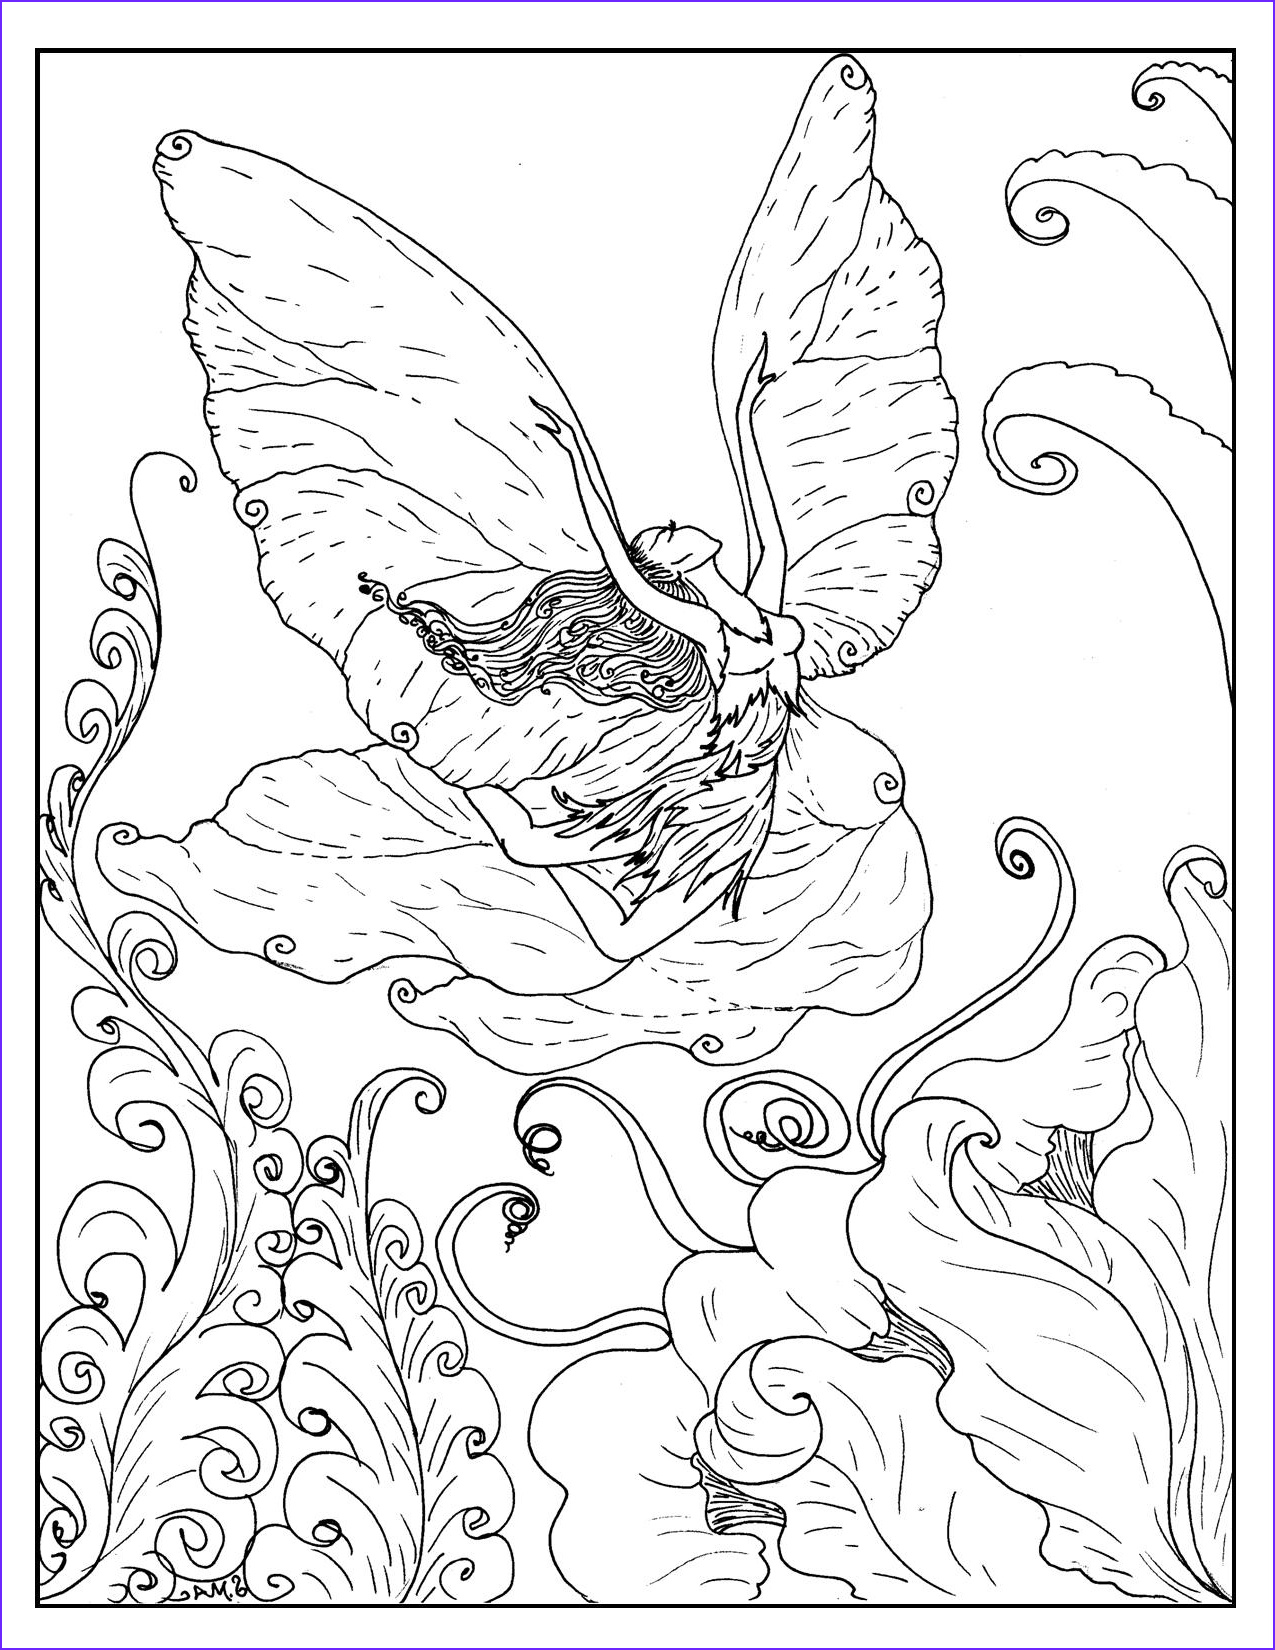 Fantasy Adult Coloring Book Elegant Photos Fantasy Coloring Pages – S Mac S Place to Be